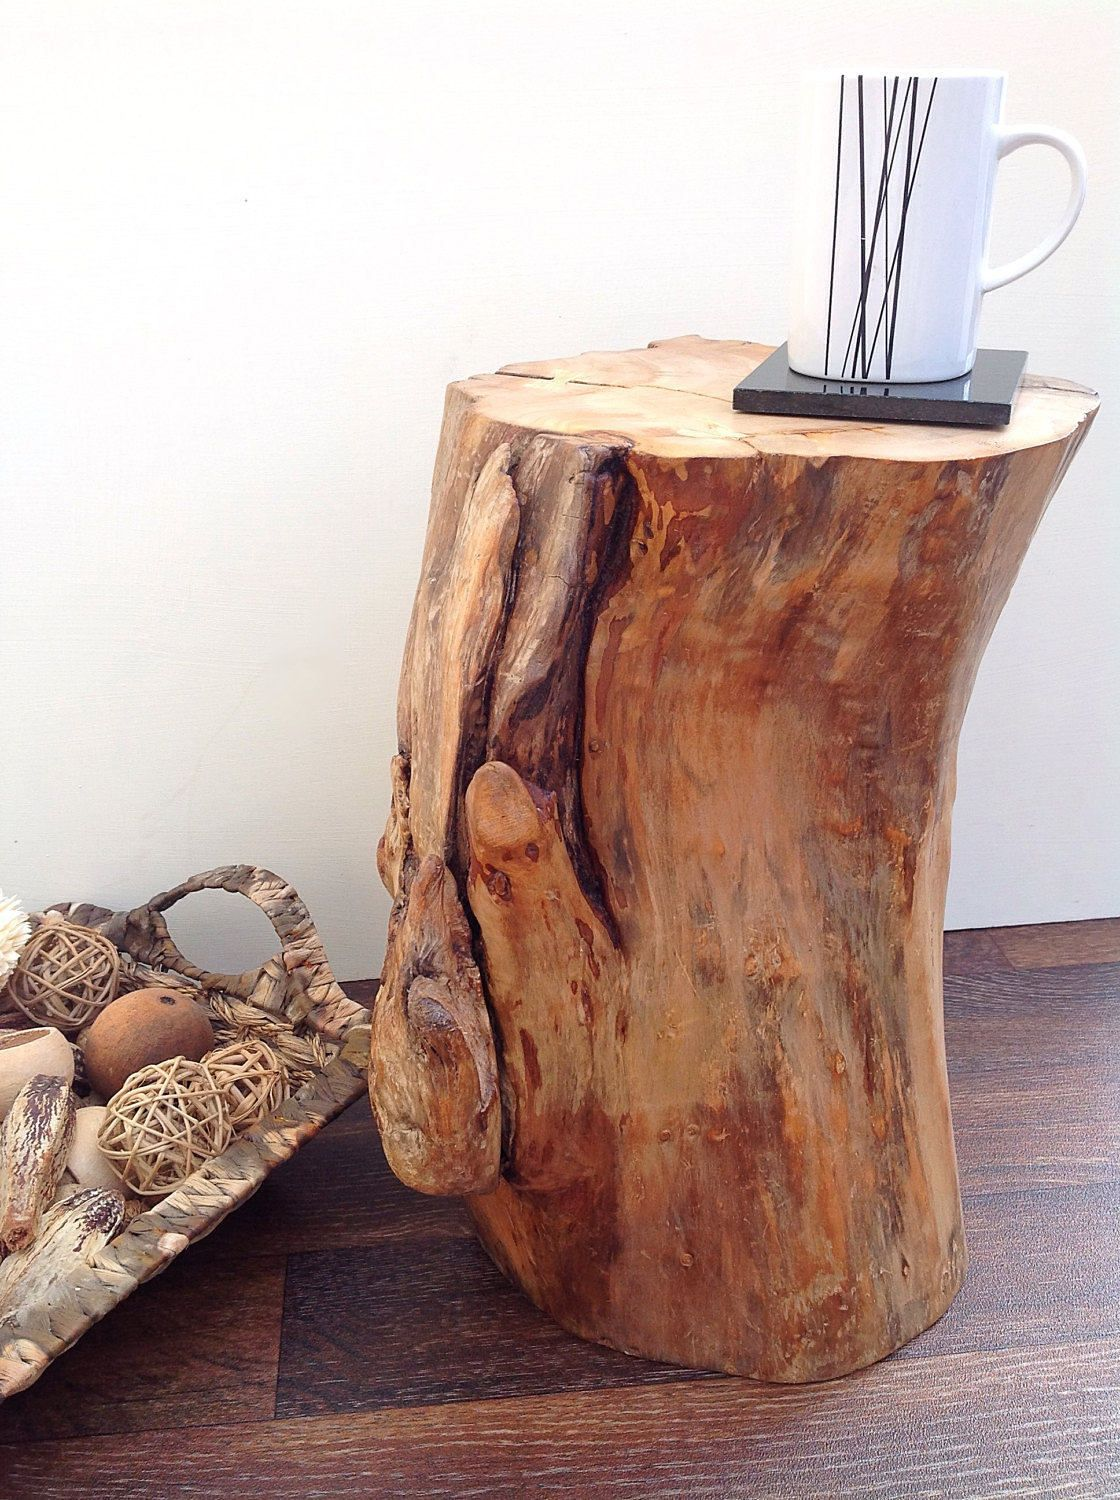 Driftwood Side Table Drift Wood Coffee End Table Driftwood Stump Bedside Table Decorative Round Round Wood Coffee Table Natural Wood Table Wood End Tables